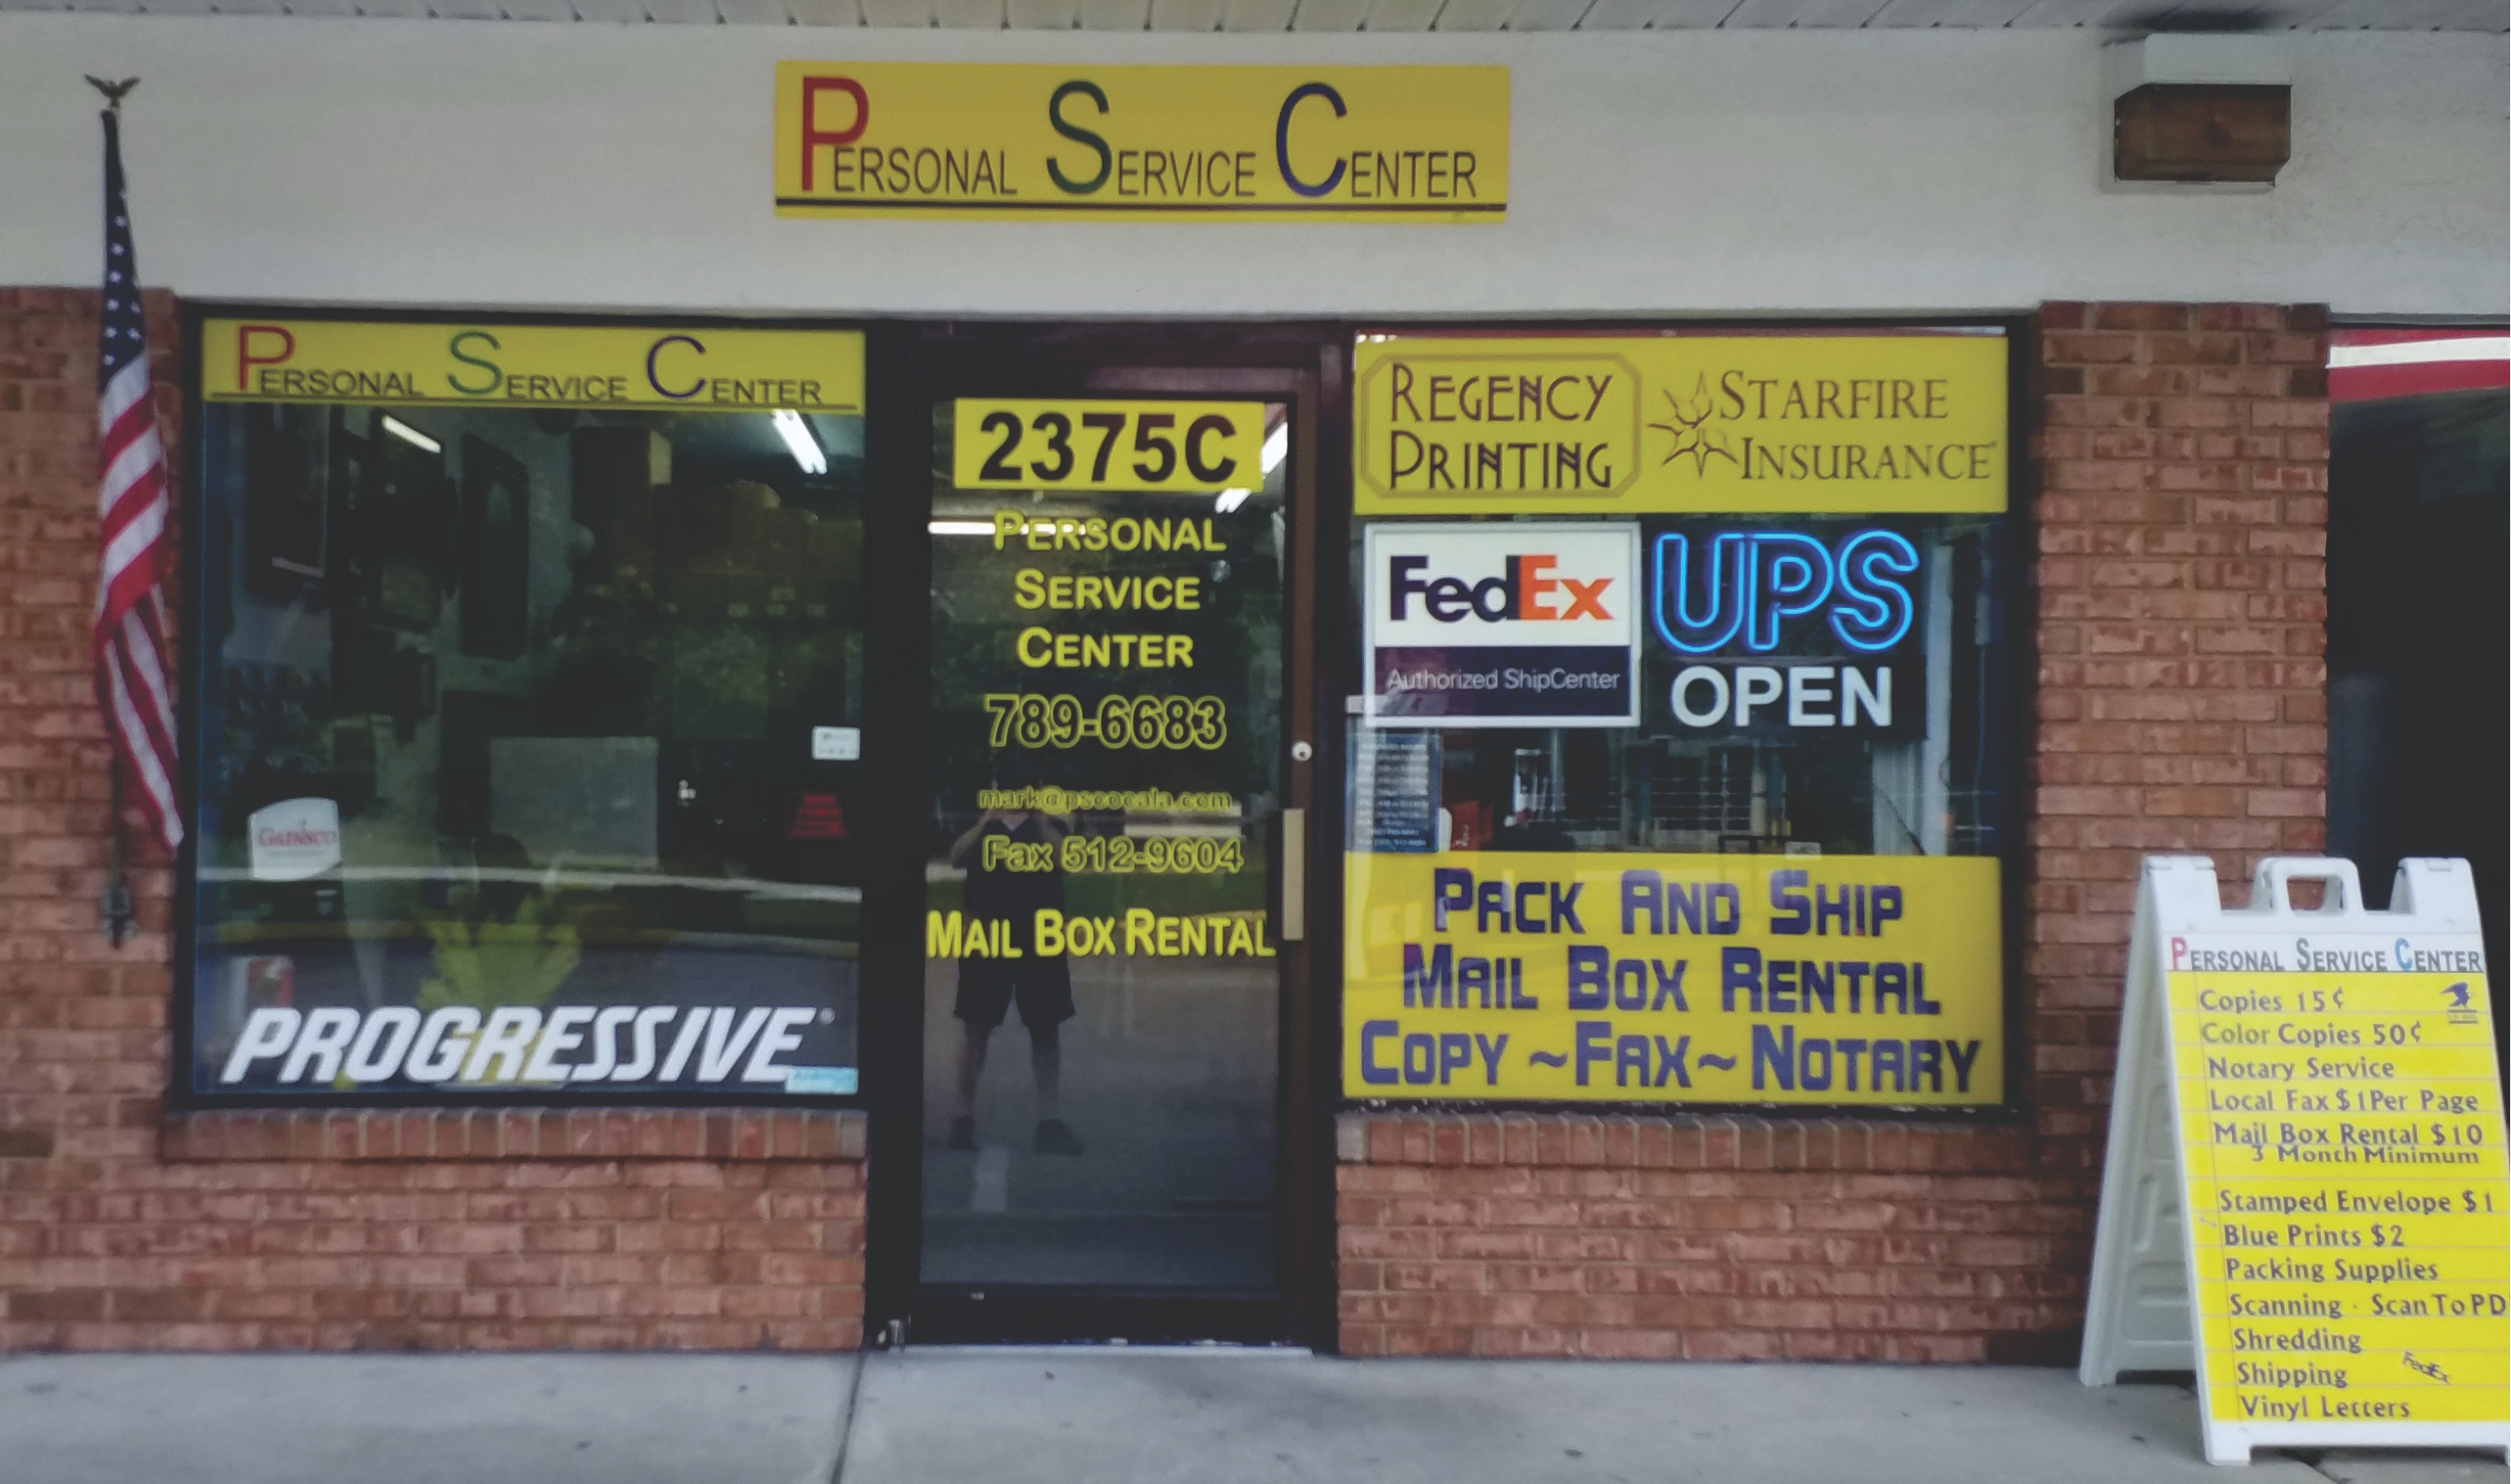 Personal Service Center – Service IS Our Middle Name